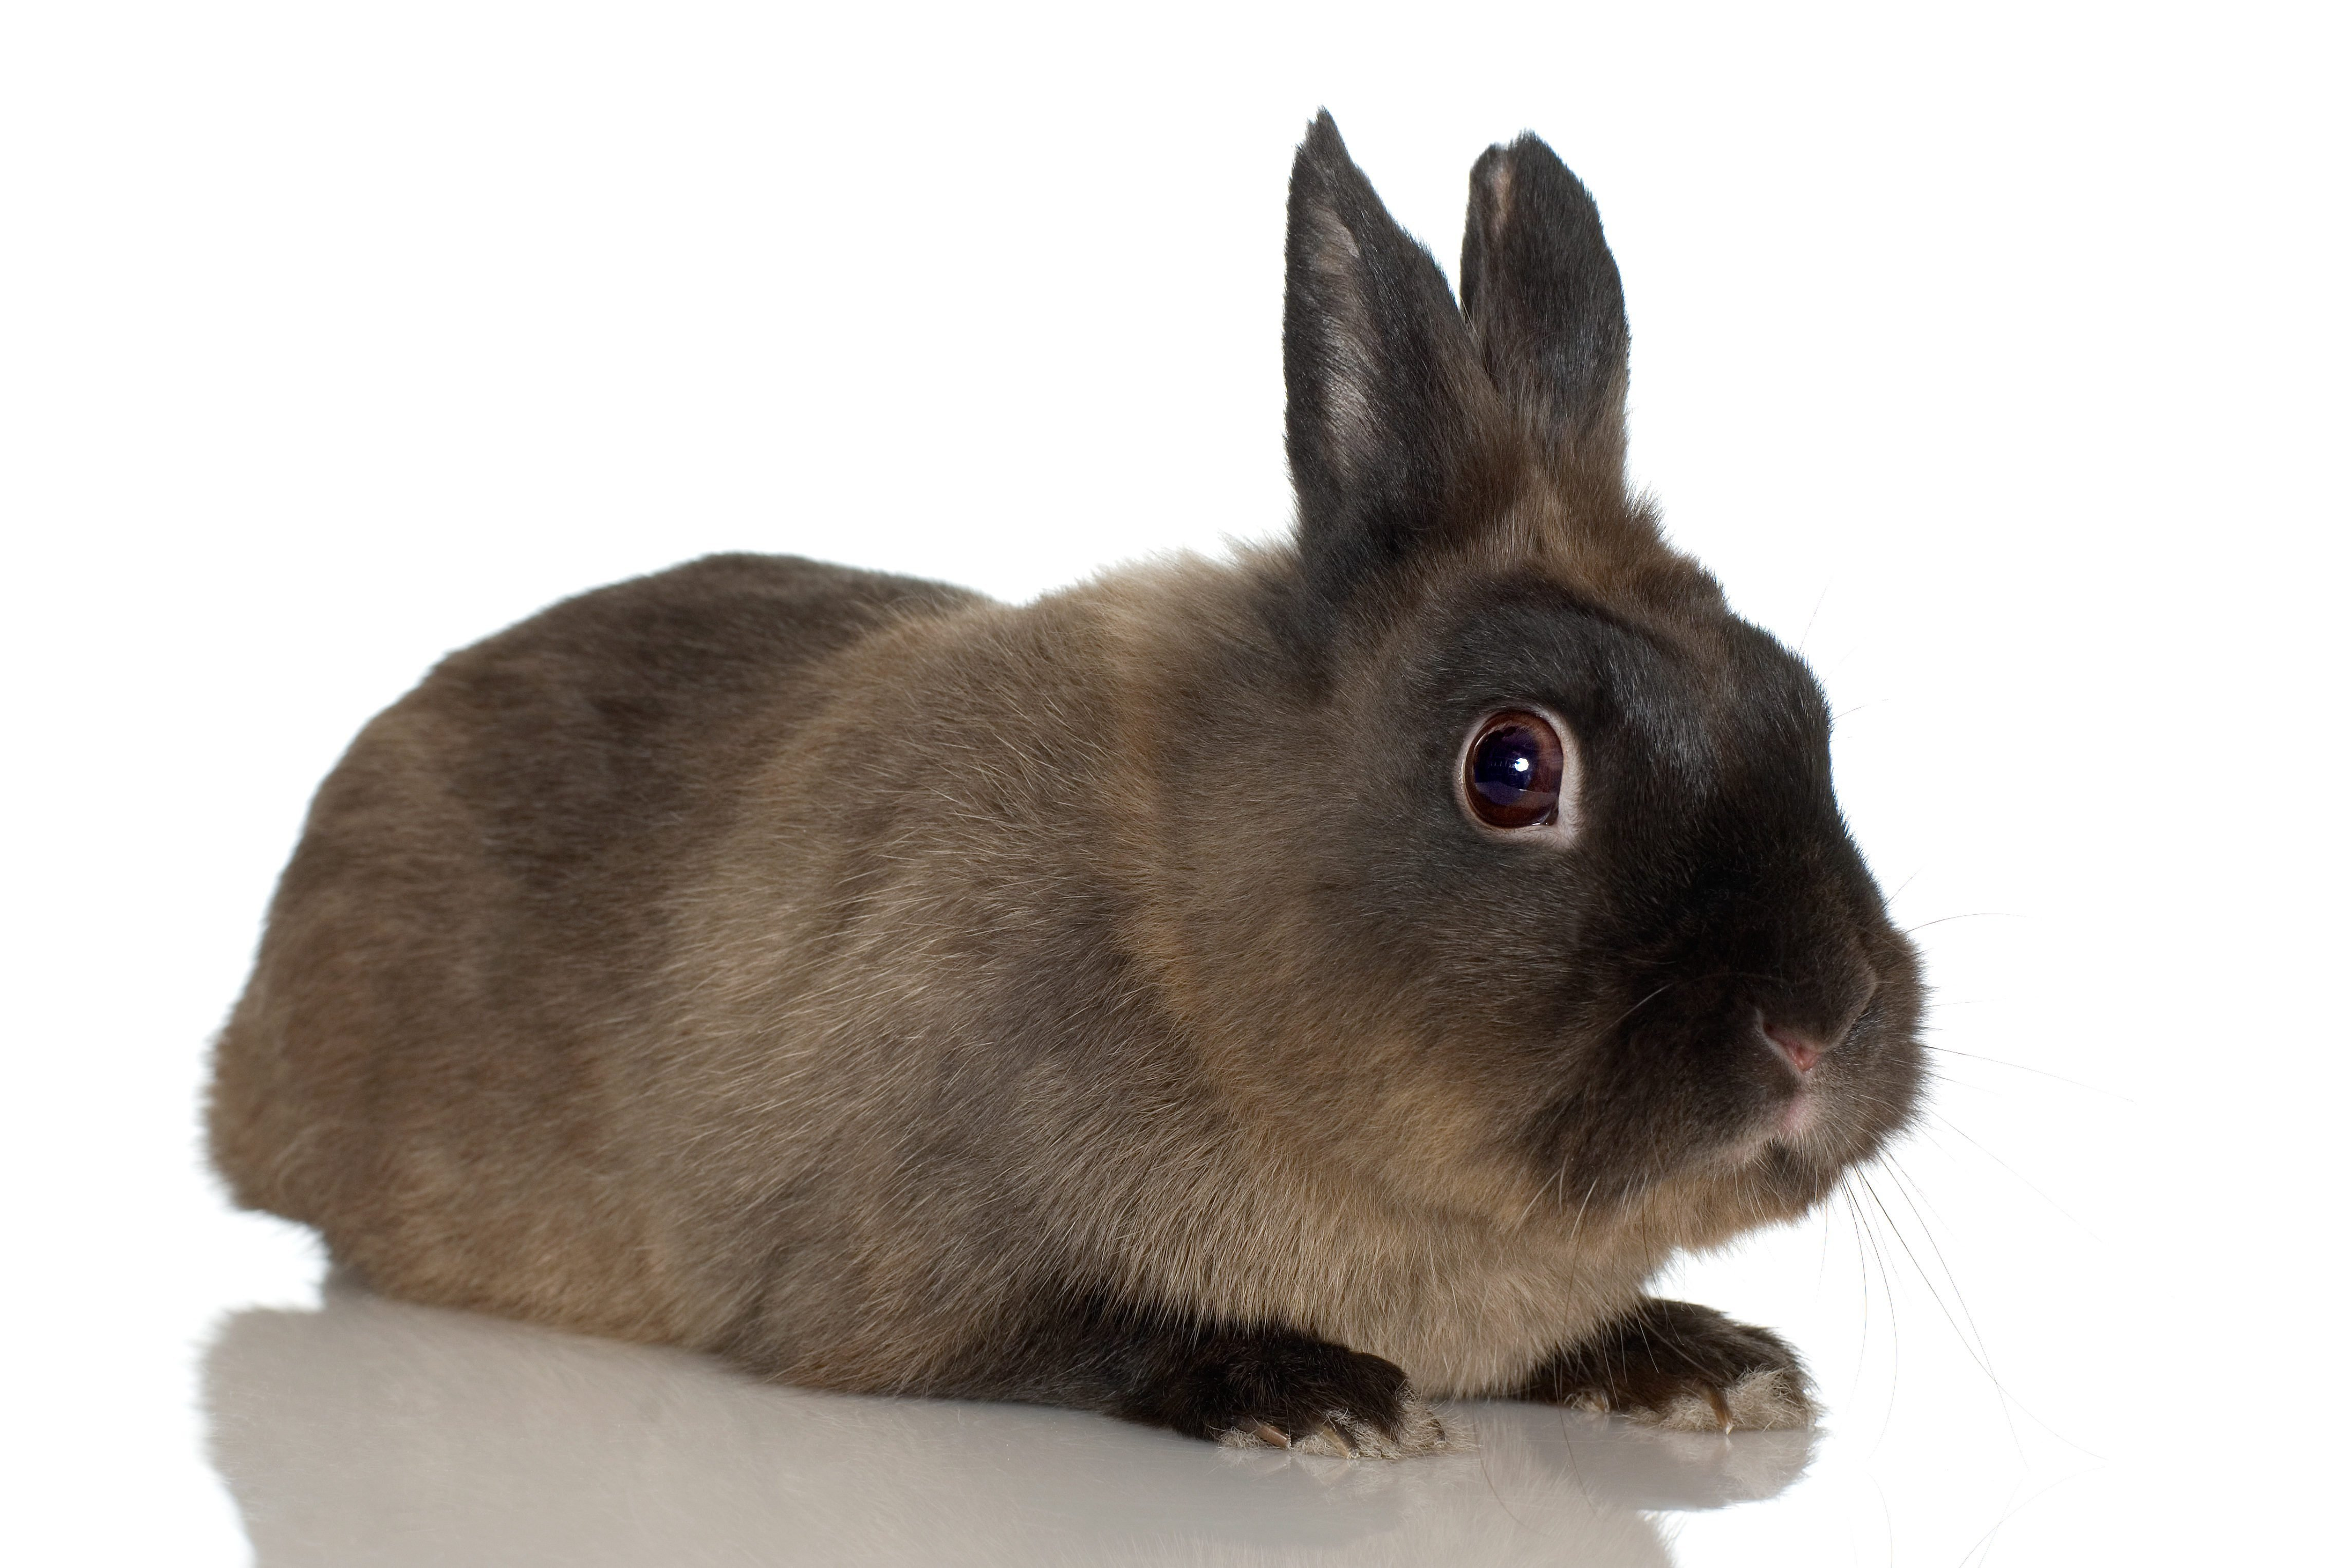 Studio portrait of Himalayan rabbit